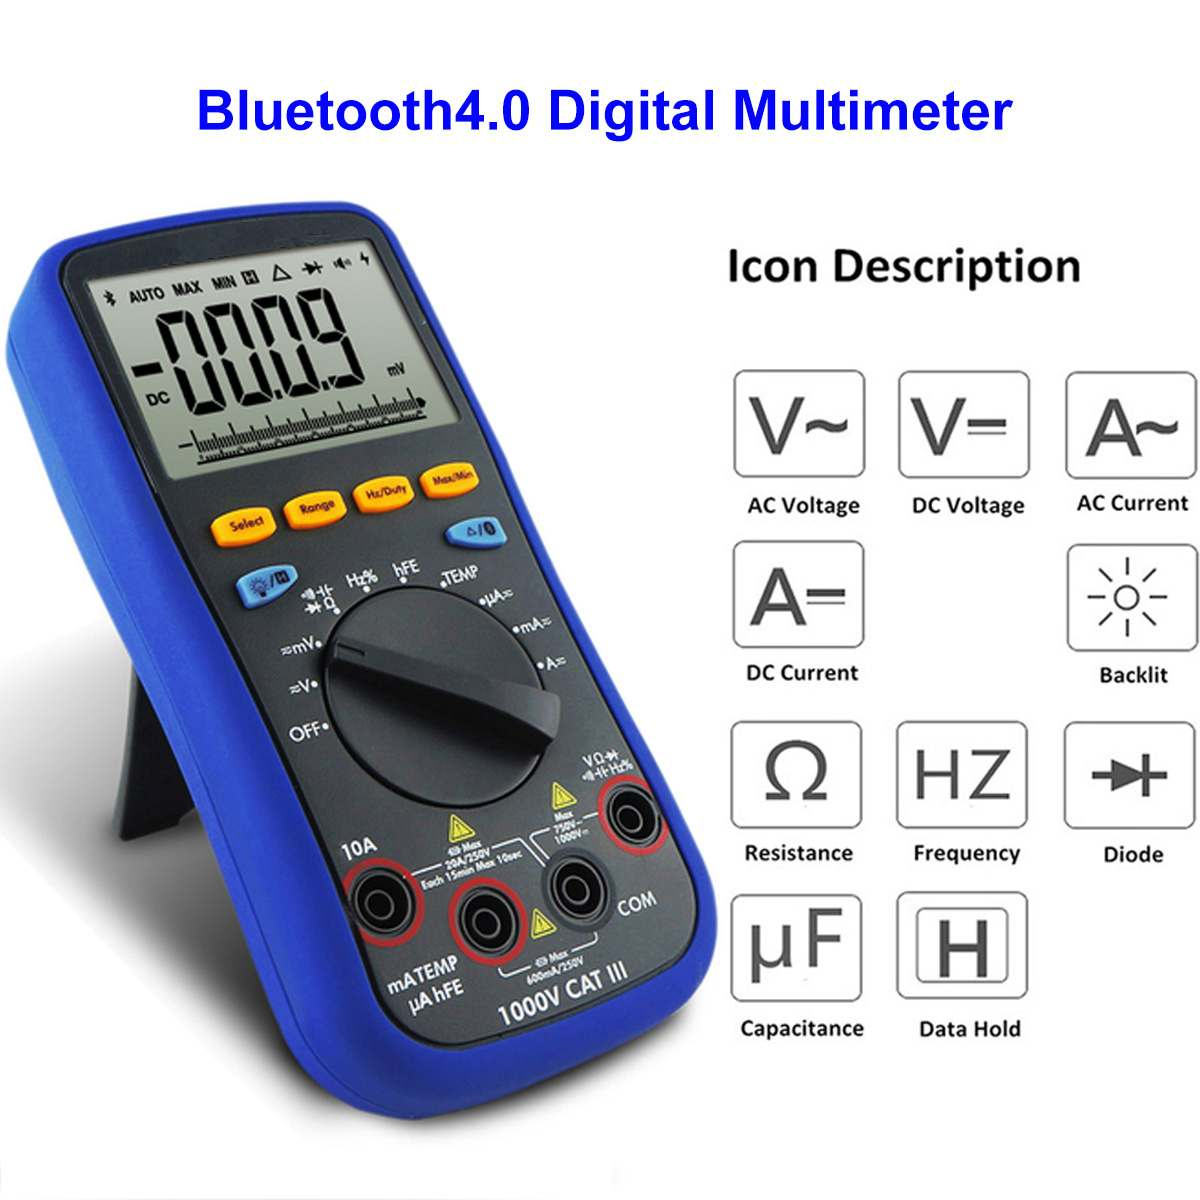 Tester bluetooth Lcd Digital Multimeter 4 0 Test Lead K type Thermocouple 6000 Count Backlight Real